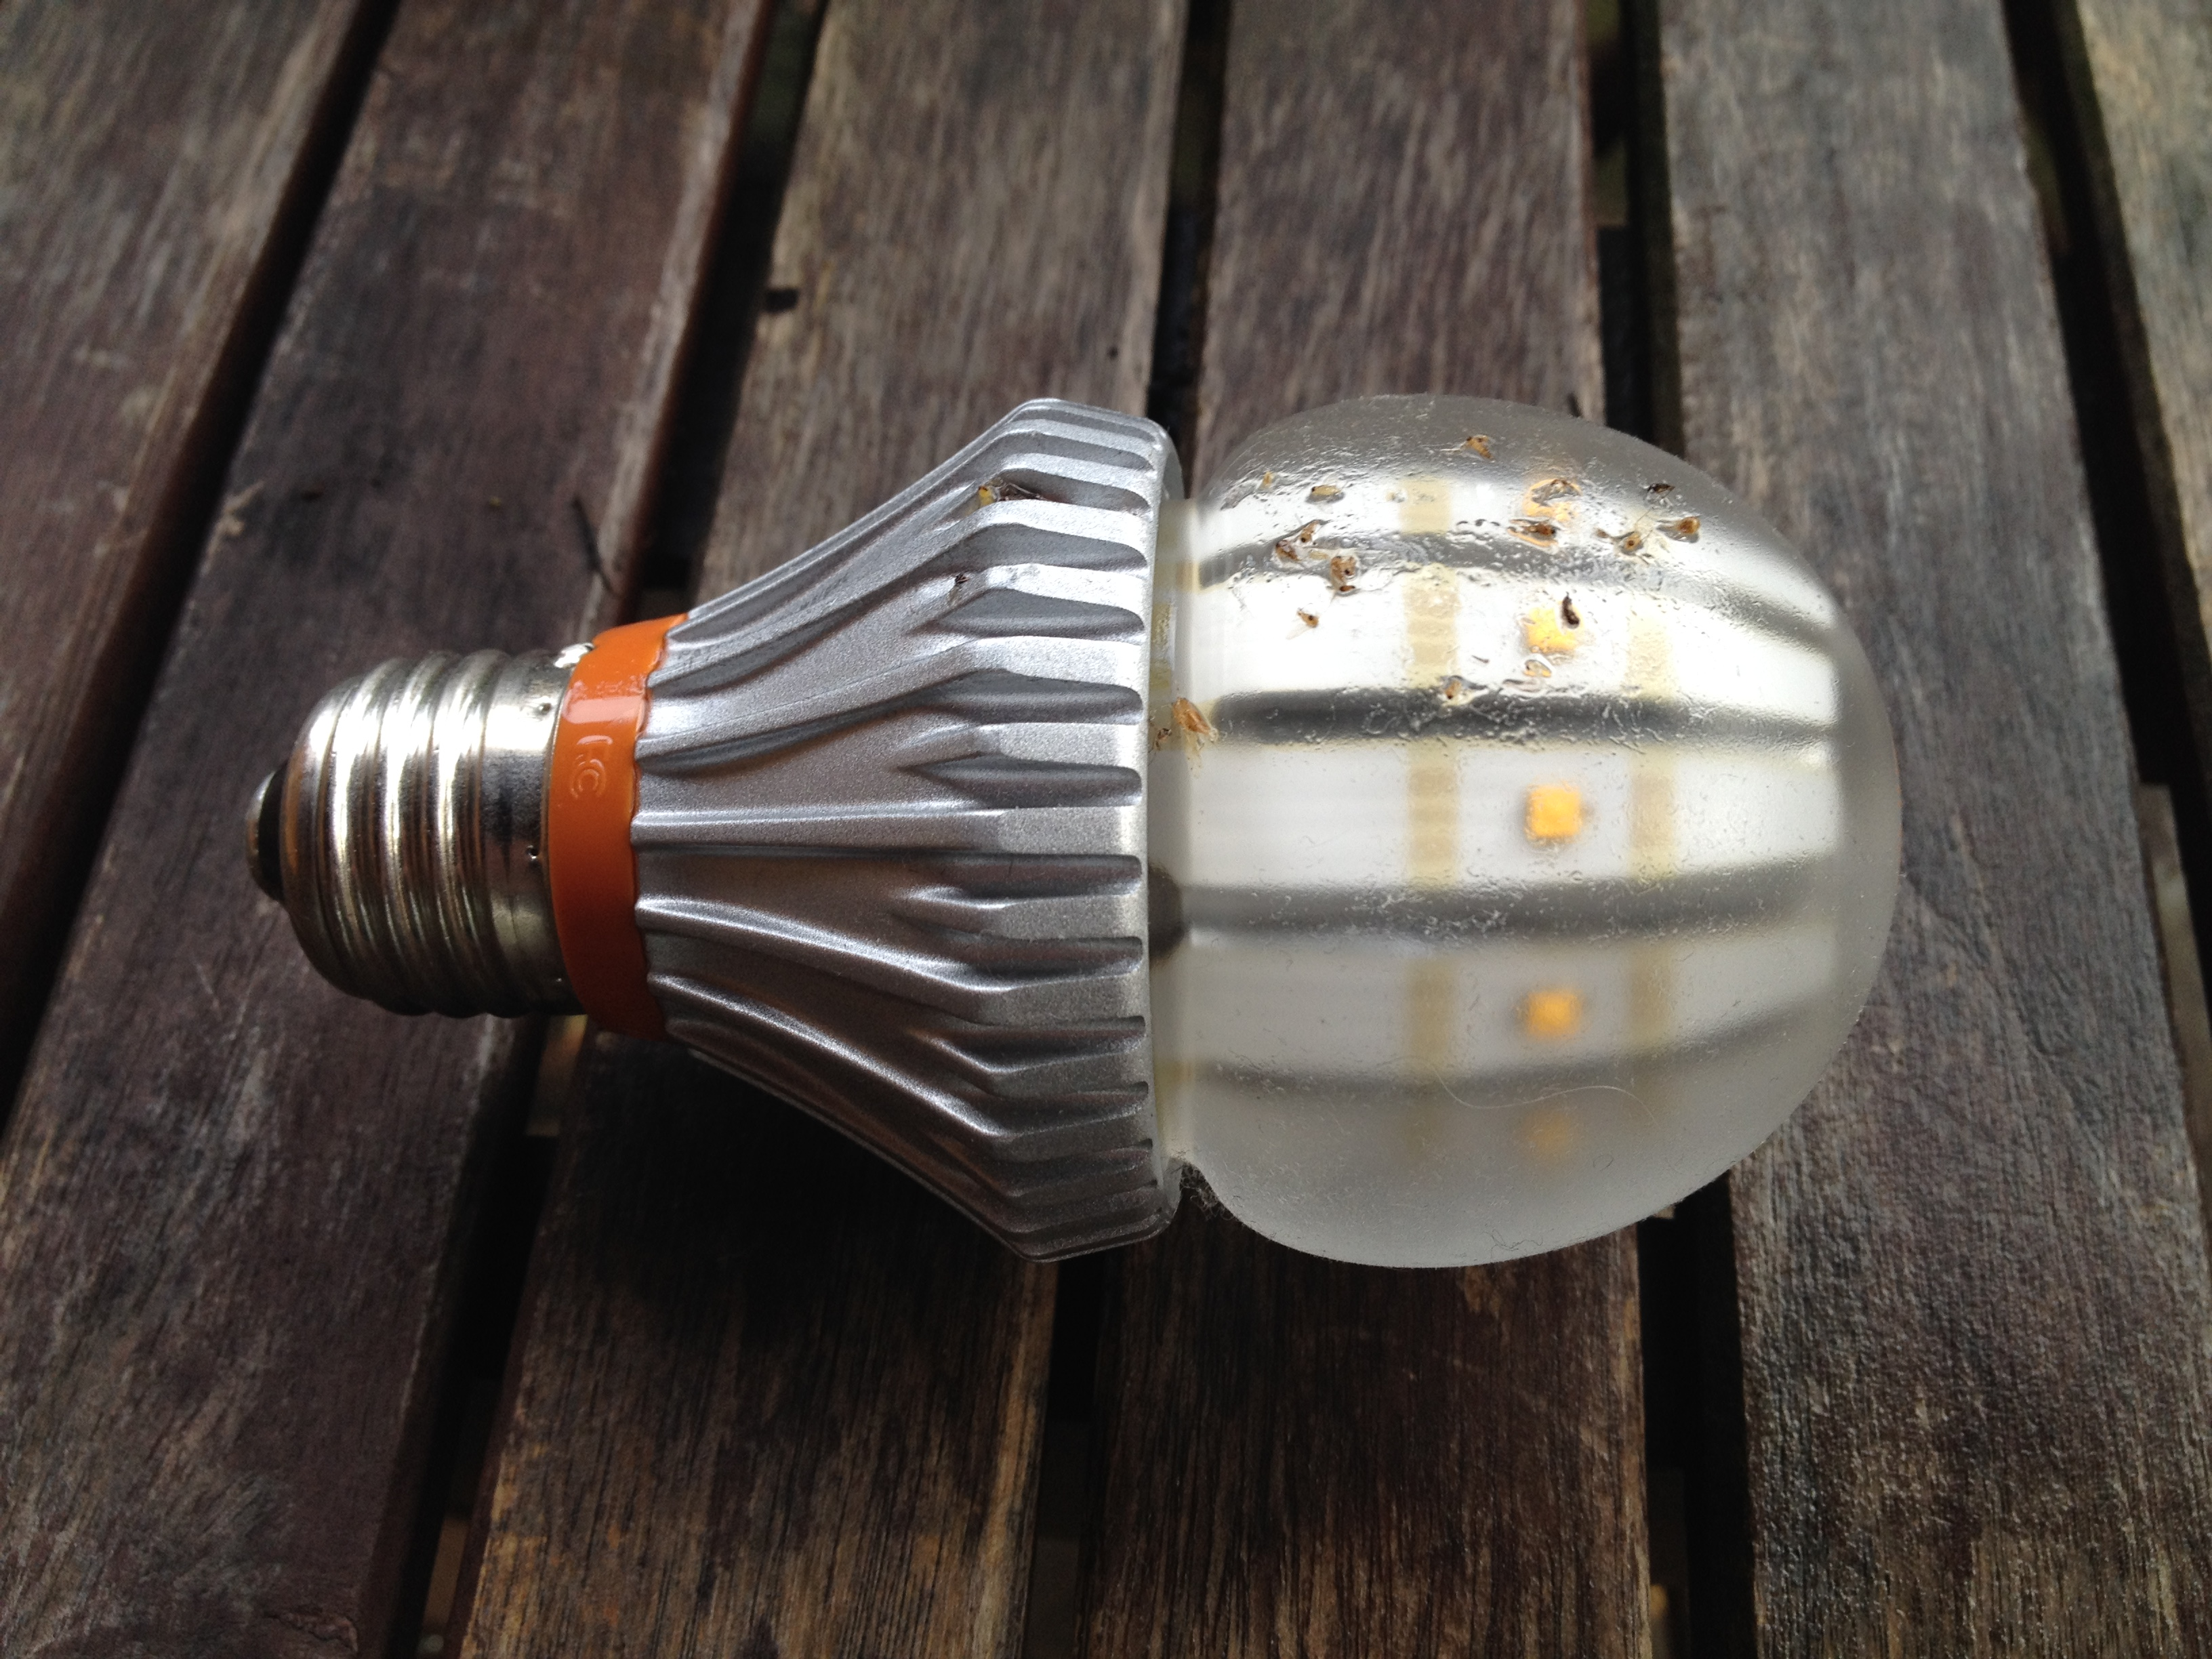 The SWITCH60 LED light bulb from Switch Lighting.